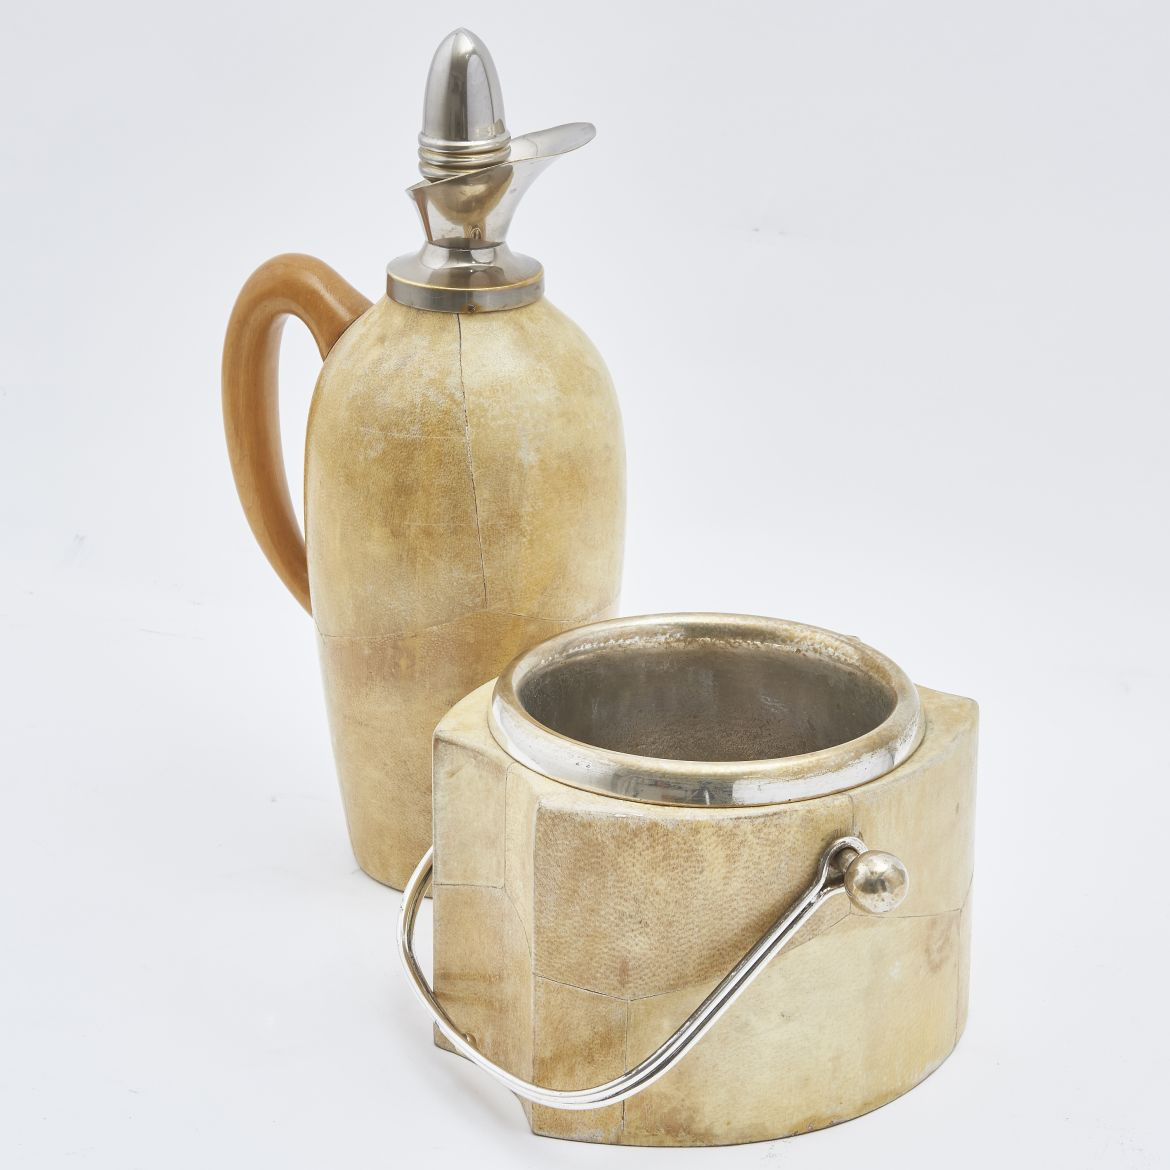 Aldo Tura Jug and Ice Bucket